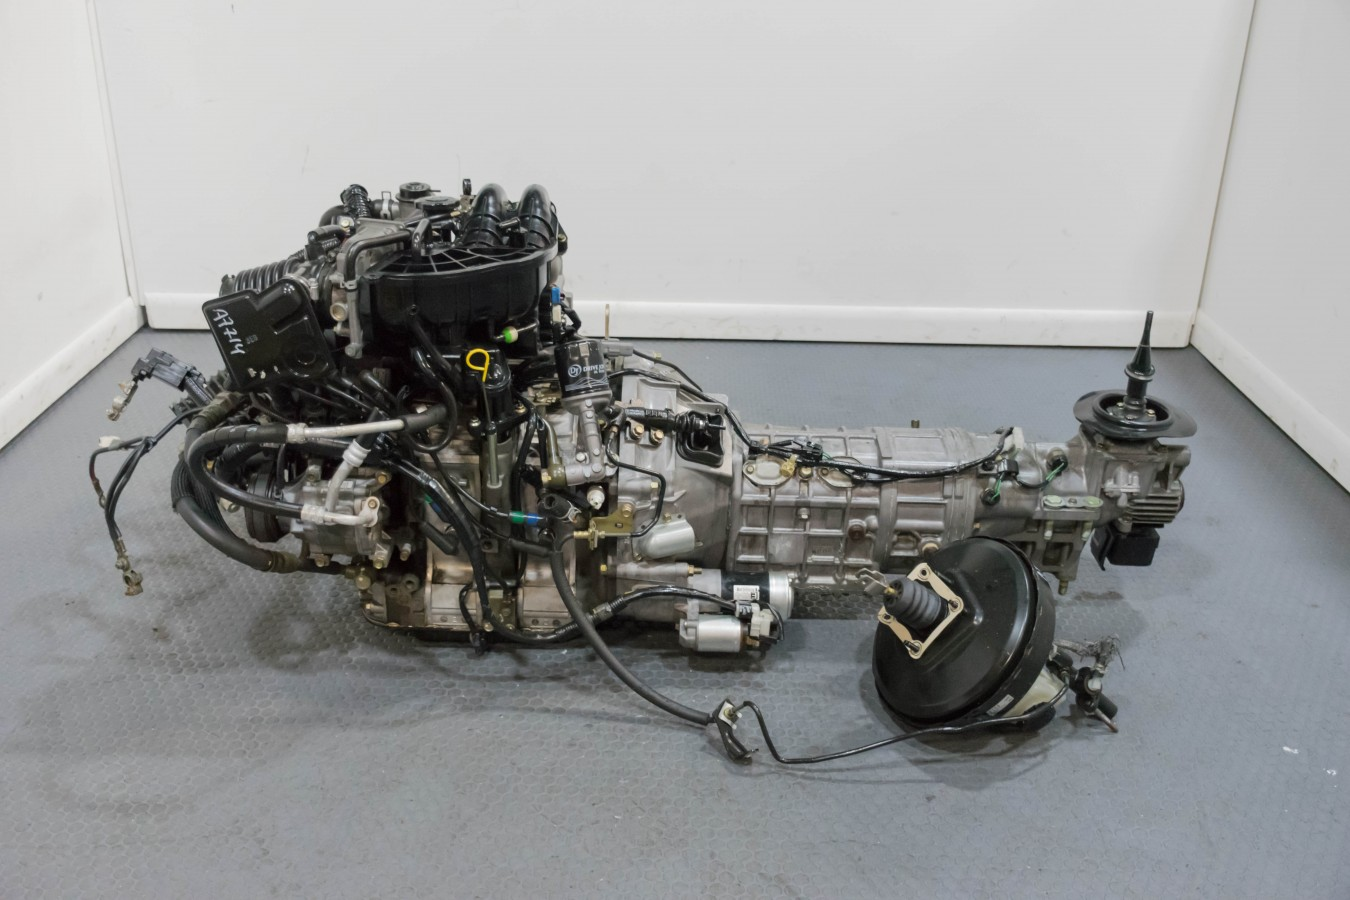 Used Mazda RX7 13B 6 Port Engine with Transmission and Oil Cooler, on